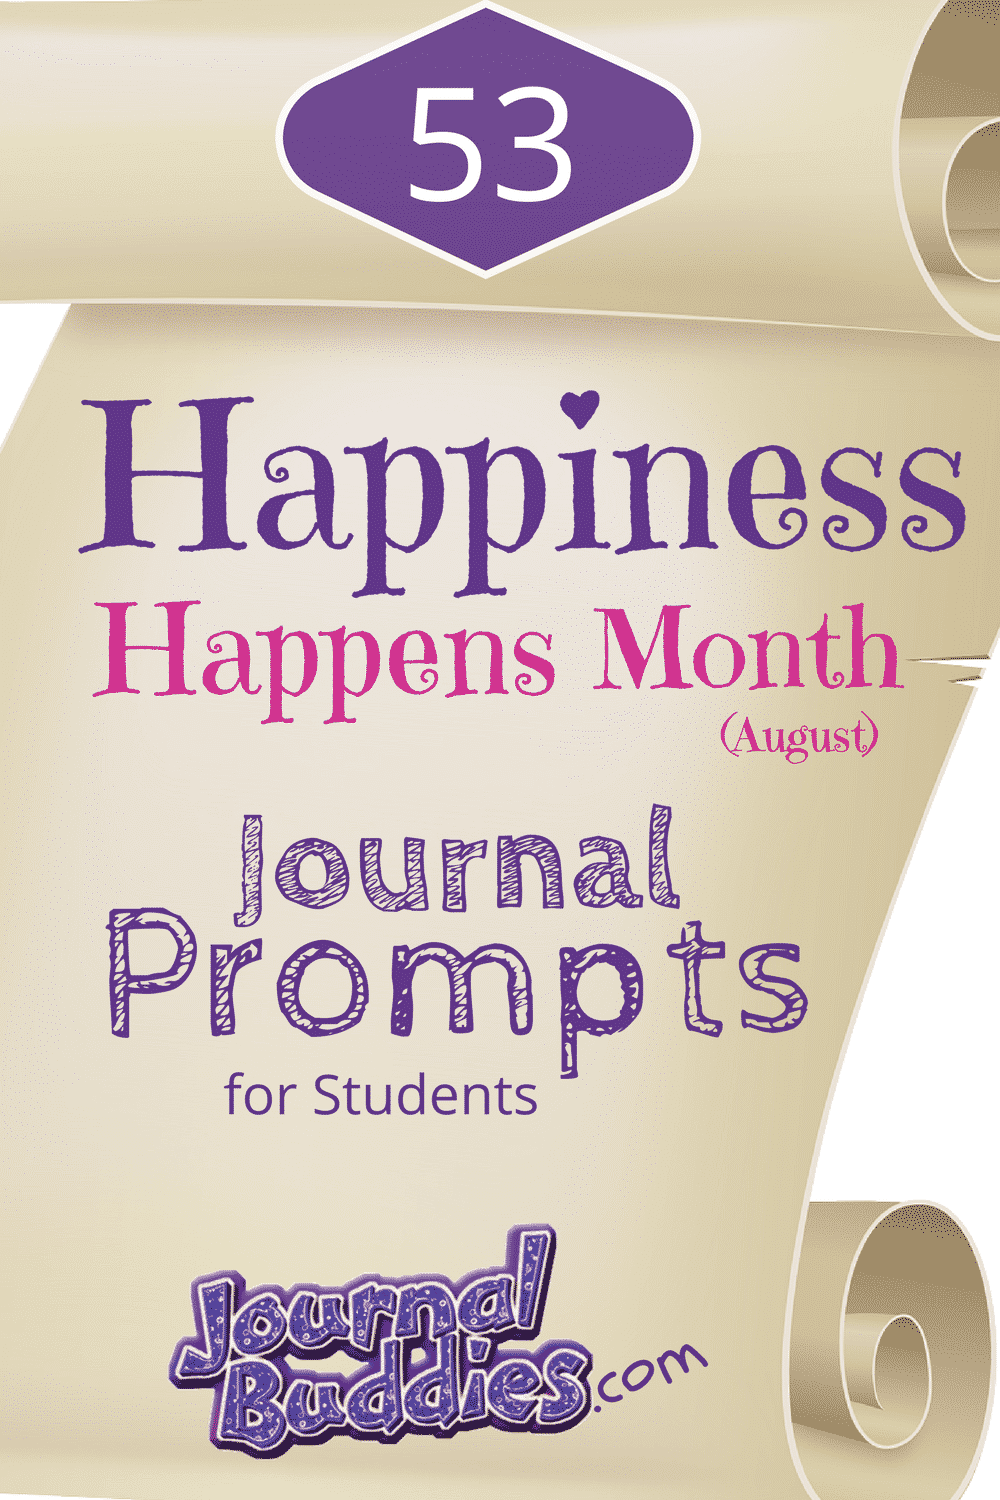 Happiness Happens Month is a time for people to celebrate all the good things in their lives. Help your students come together in recognizing just how happy they are with these journal prompts!